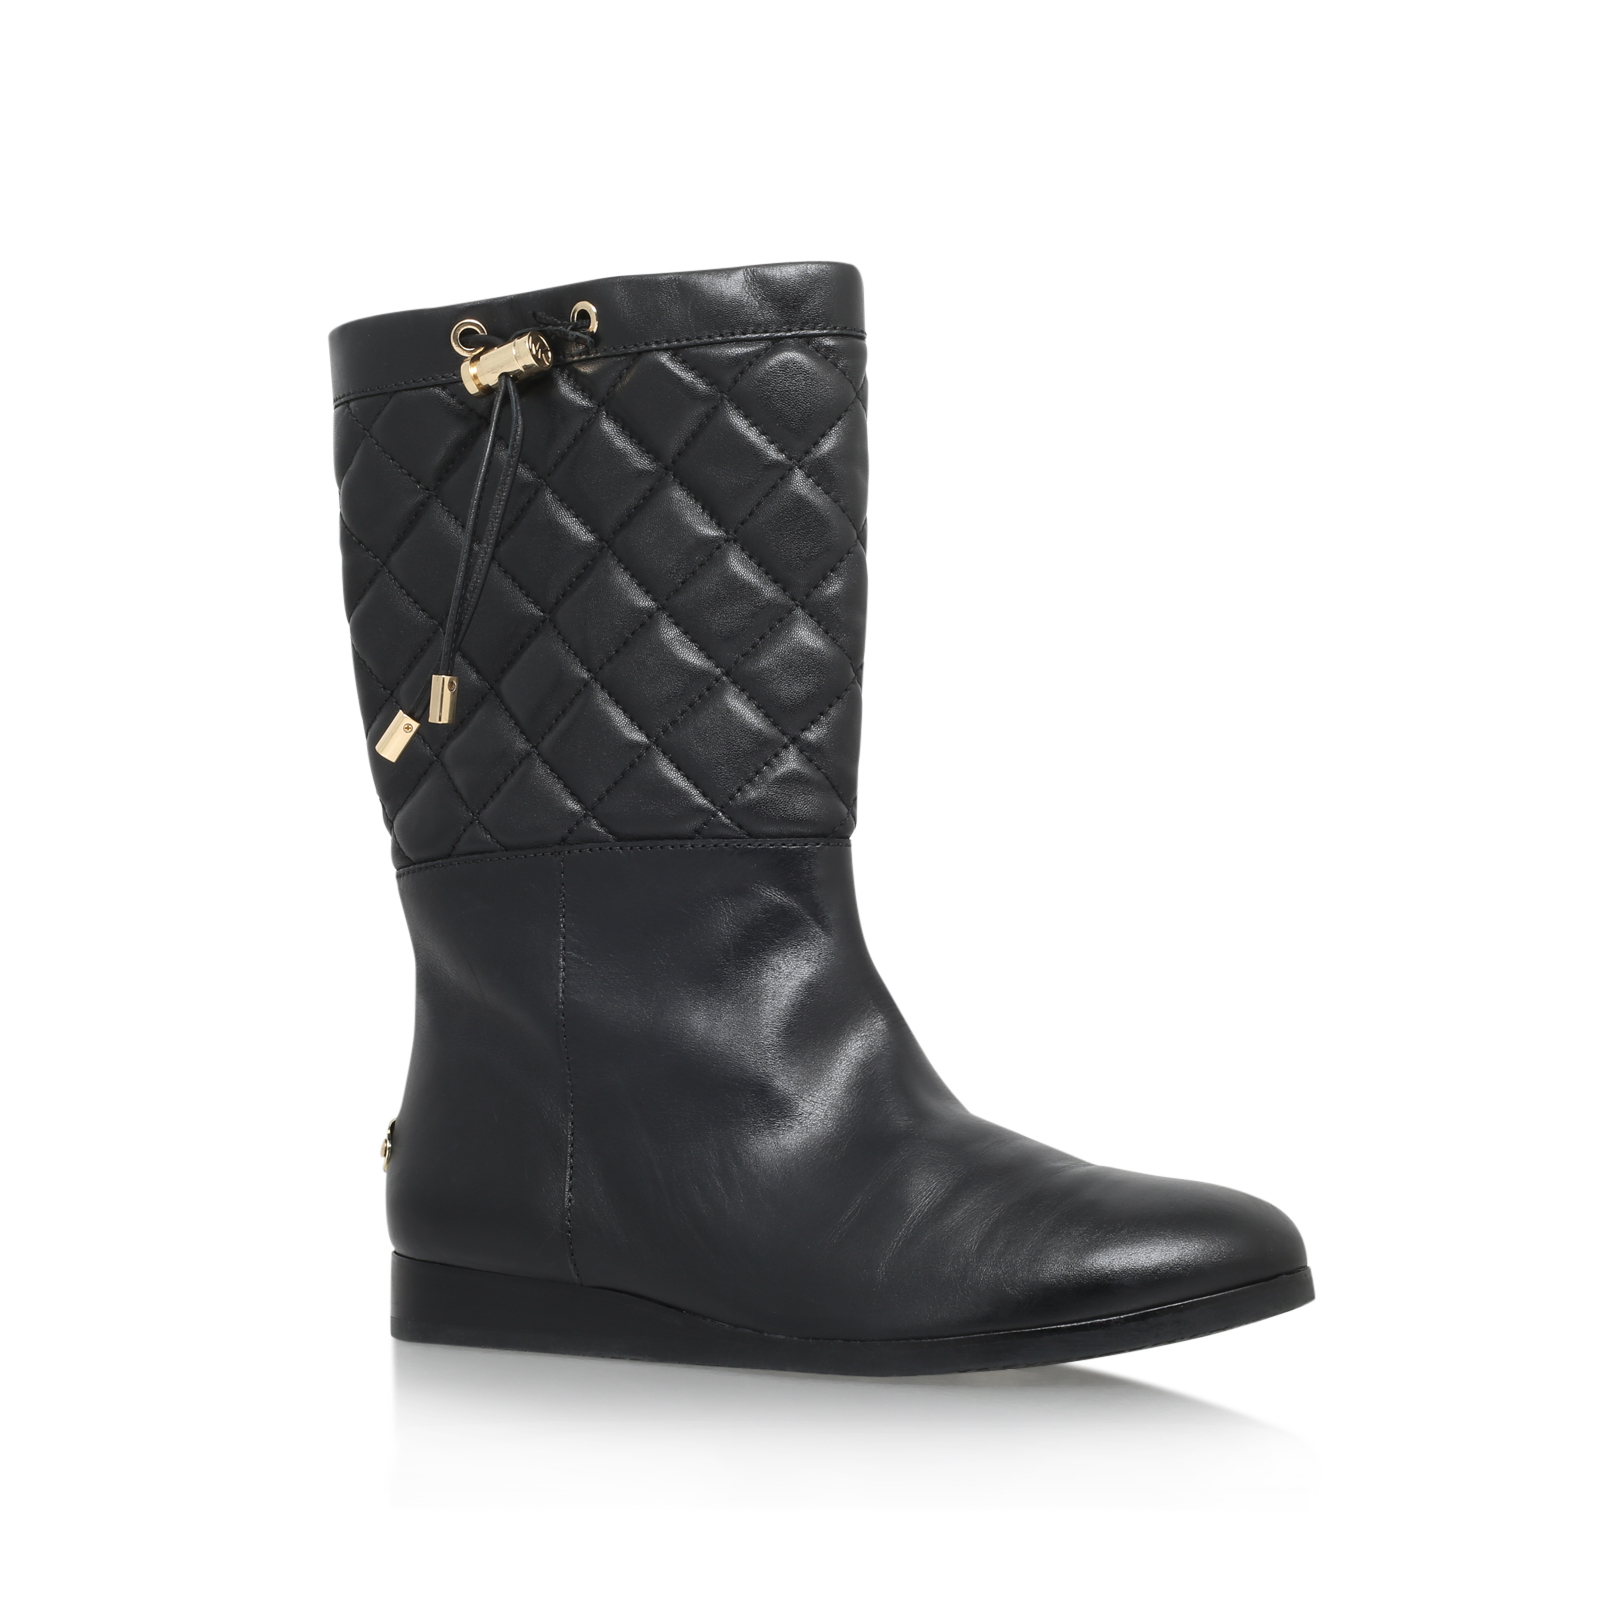 LIZZIE QUILTED MID BOOT